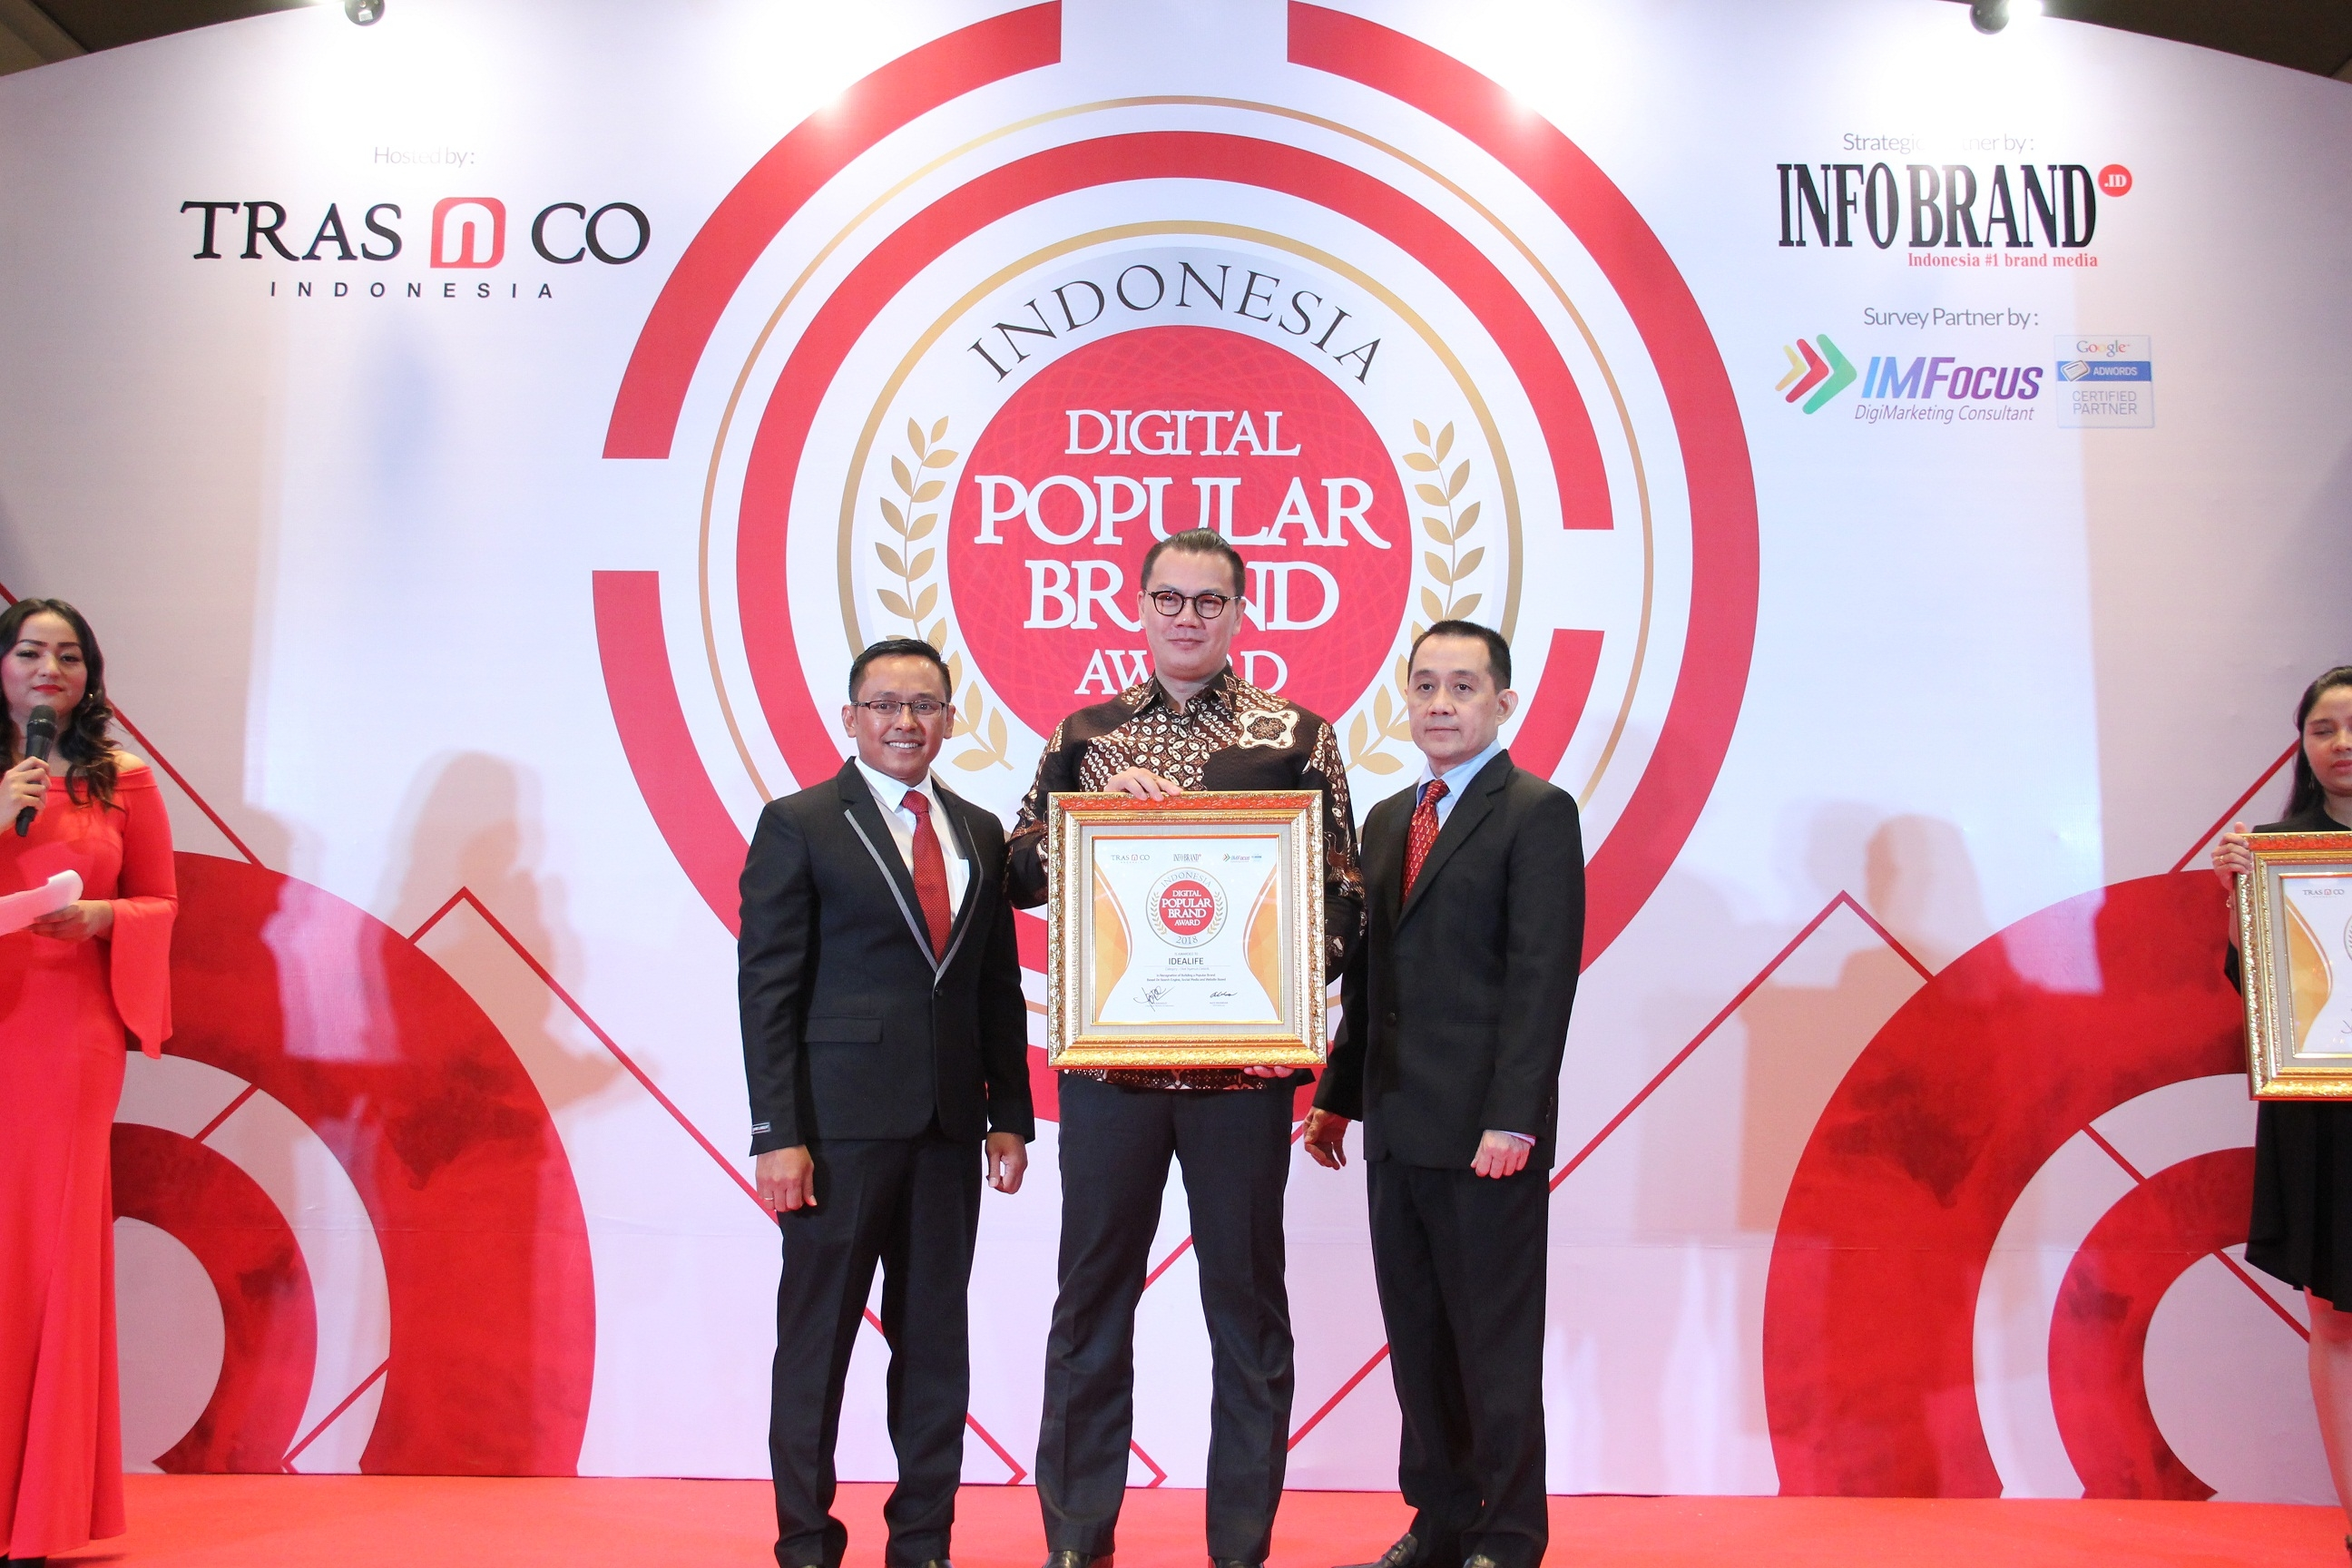 Idealife Raih Penghargaan Indonesia Digital Popular Brand Award  2018, Idealife Berharap Reputasinya Bakal Terus Meningkat